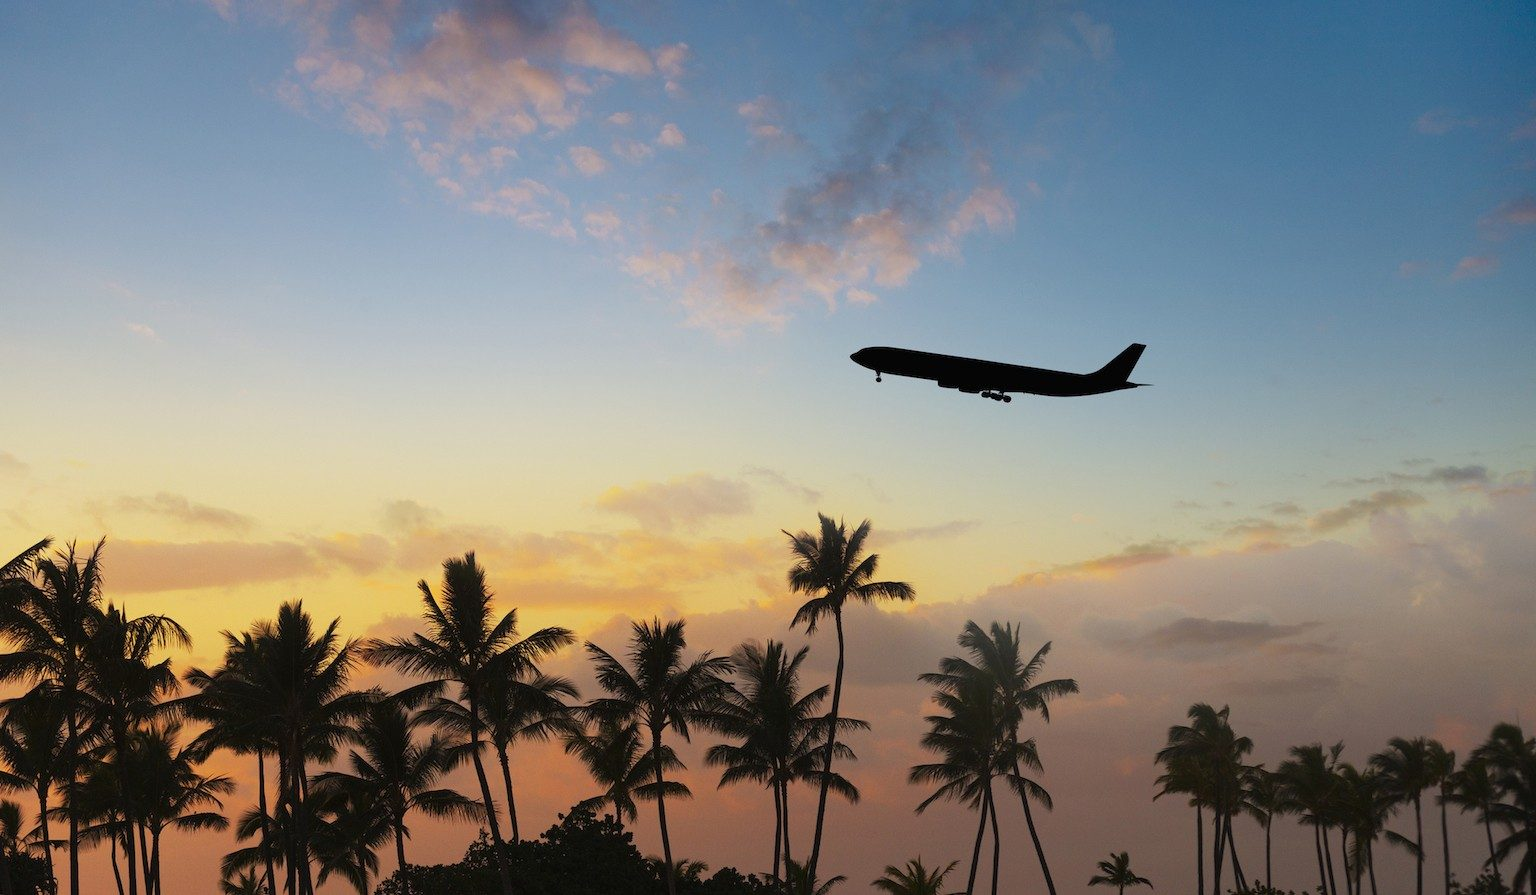 Plane flying over palm trees with sunset in the background.